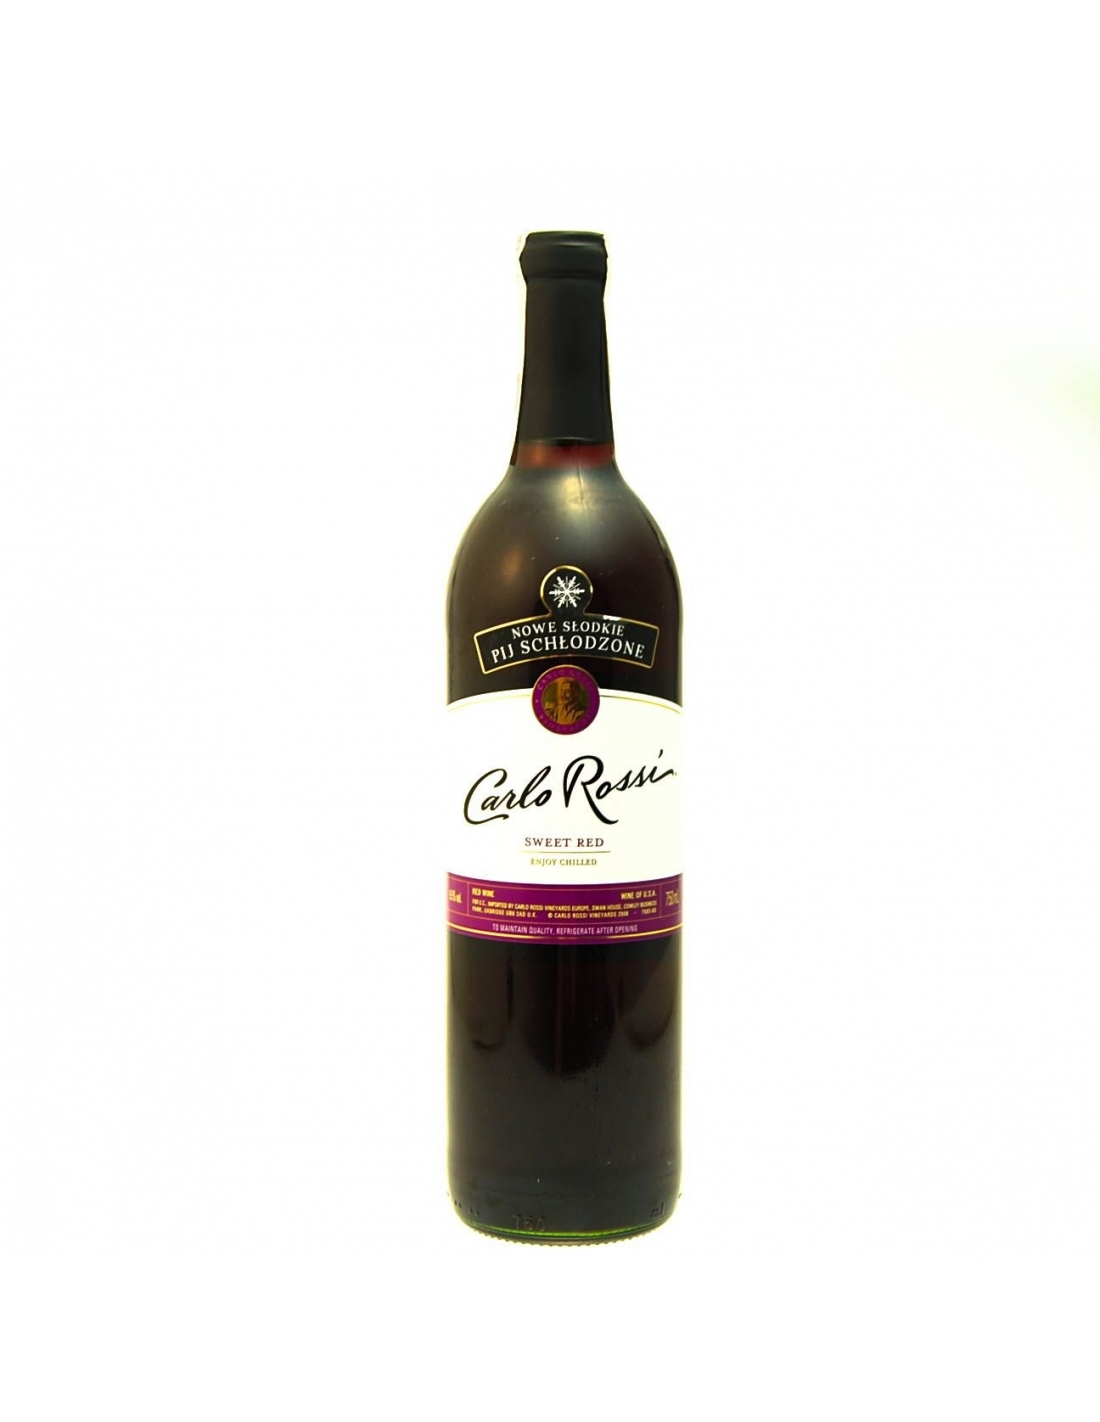 Carlo Rossi Sweet Red 75cl Market Express Sprite Pet 15l